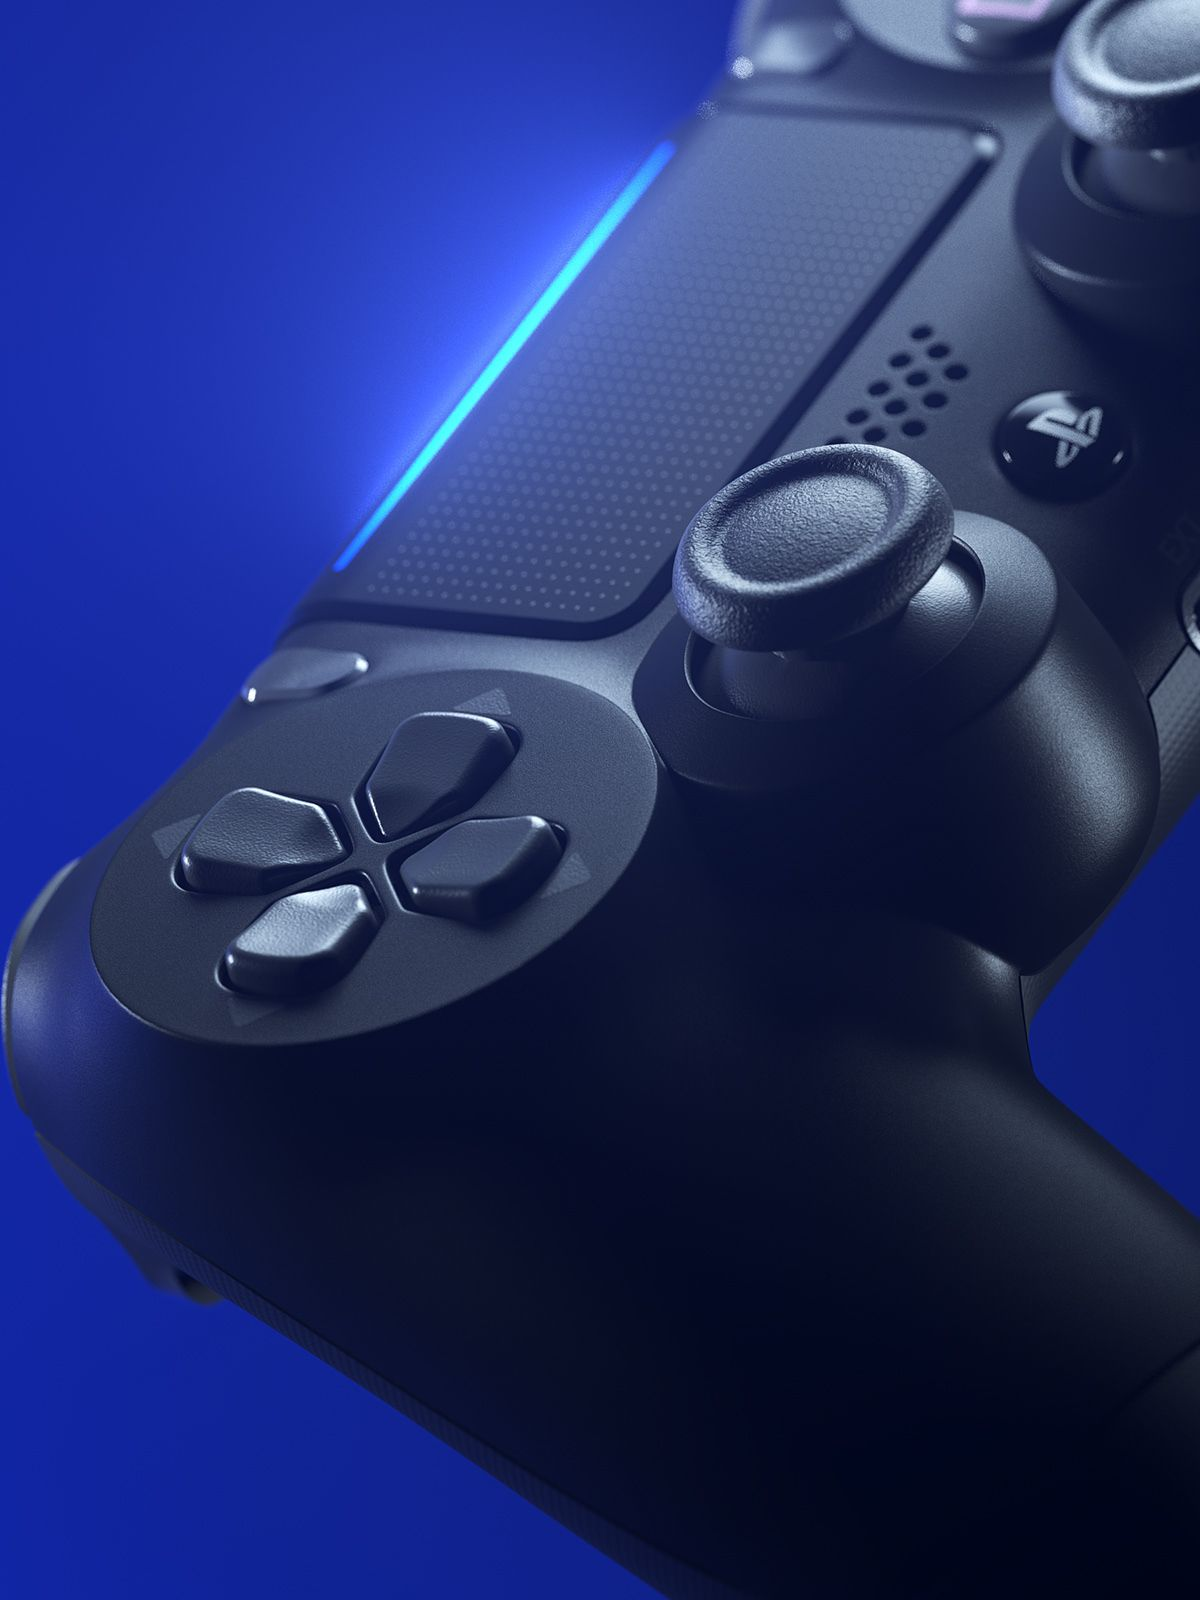 Playstation Light On Behance Playstation Gaming Wallpapers Console